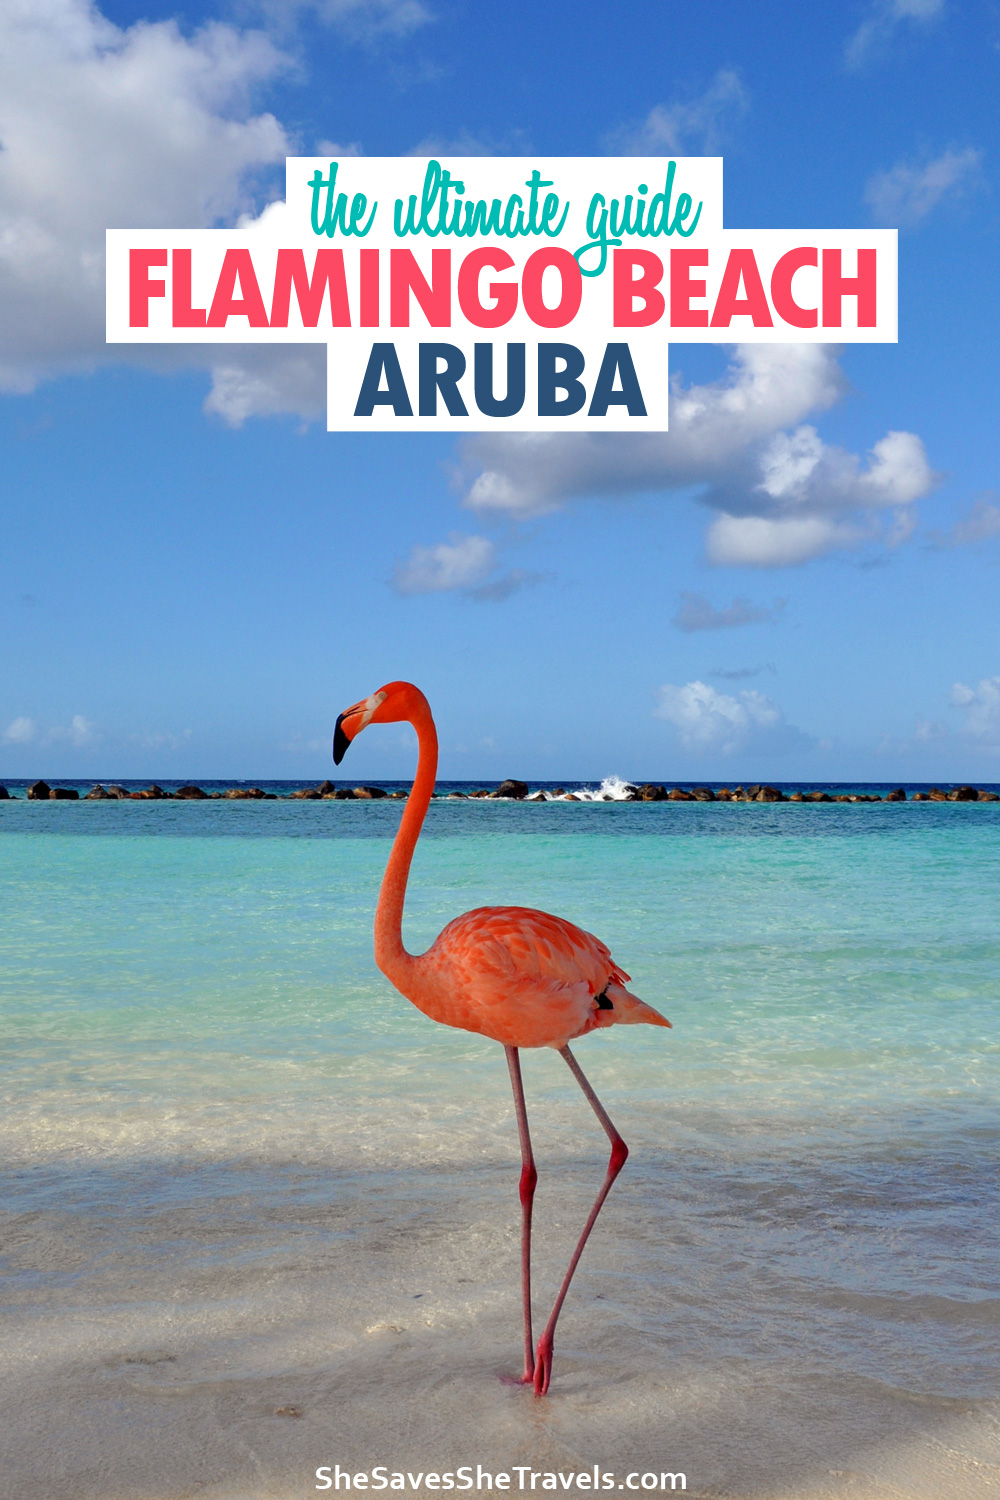 the ultimate guide Flamingo Beach Aruba